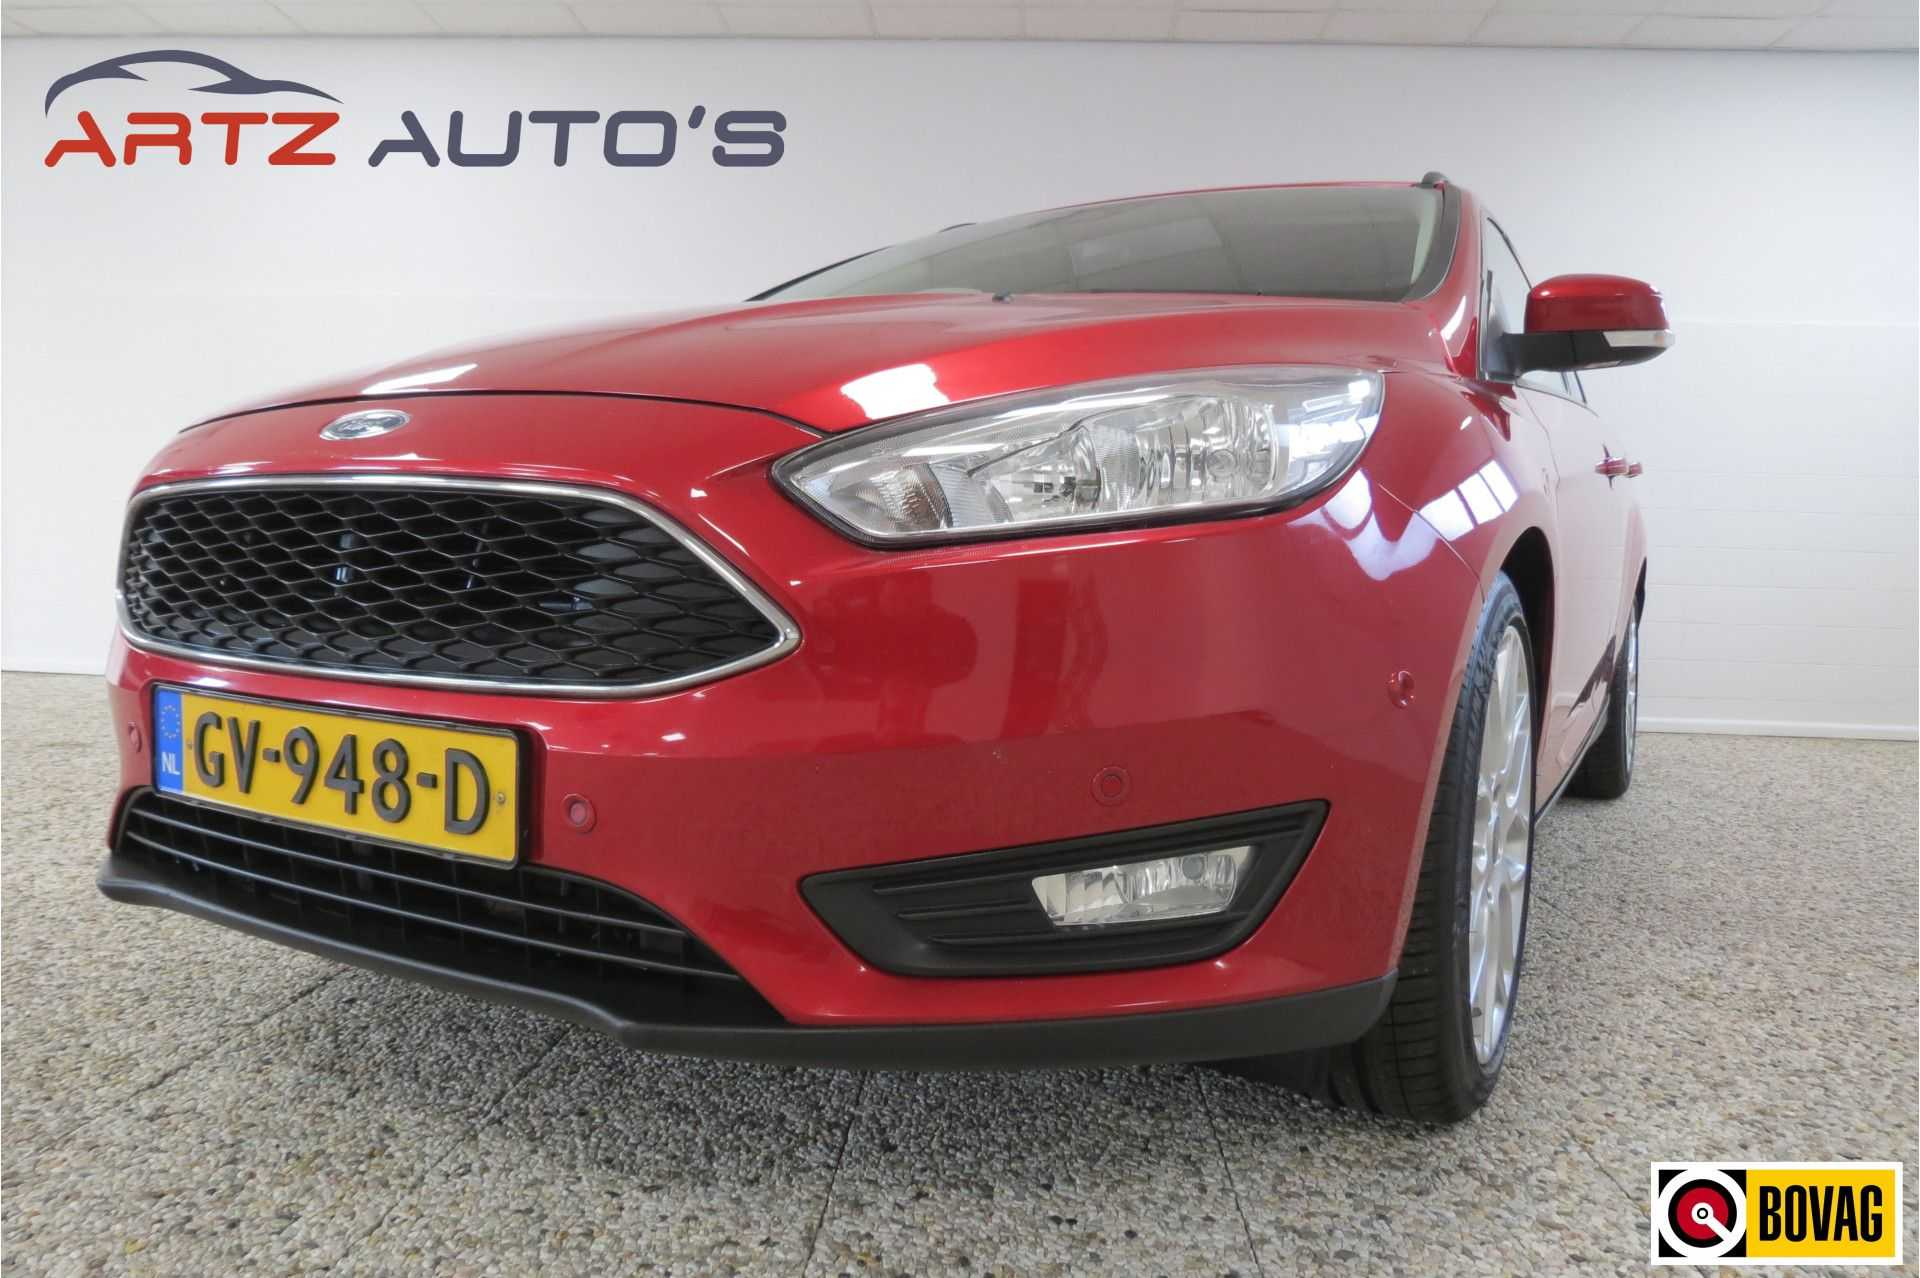 Ford Focus Wagon 1.5 Titanium | 150 PK | SYNC 2 | ADVANCED PACK | WINTER PACK | GETINT GLAS